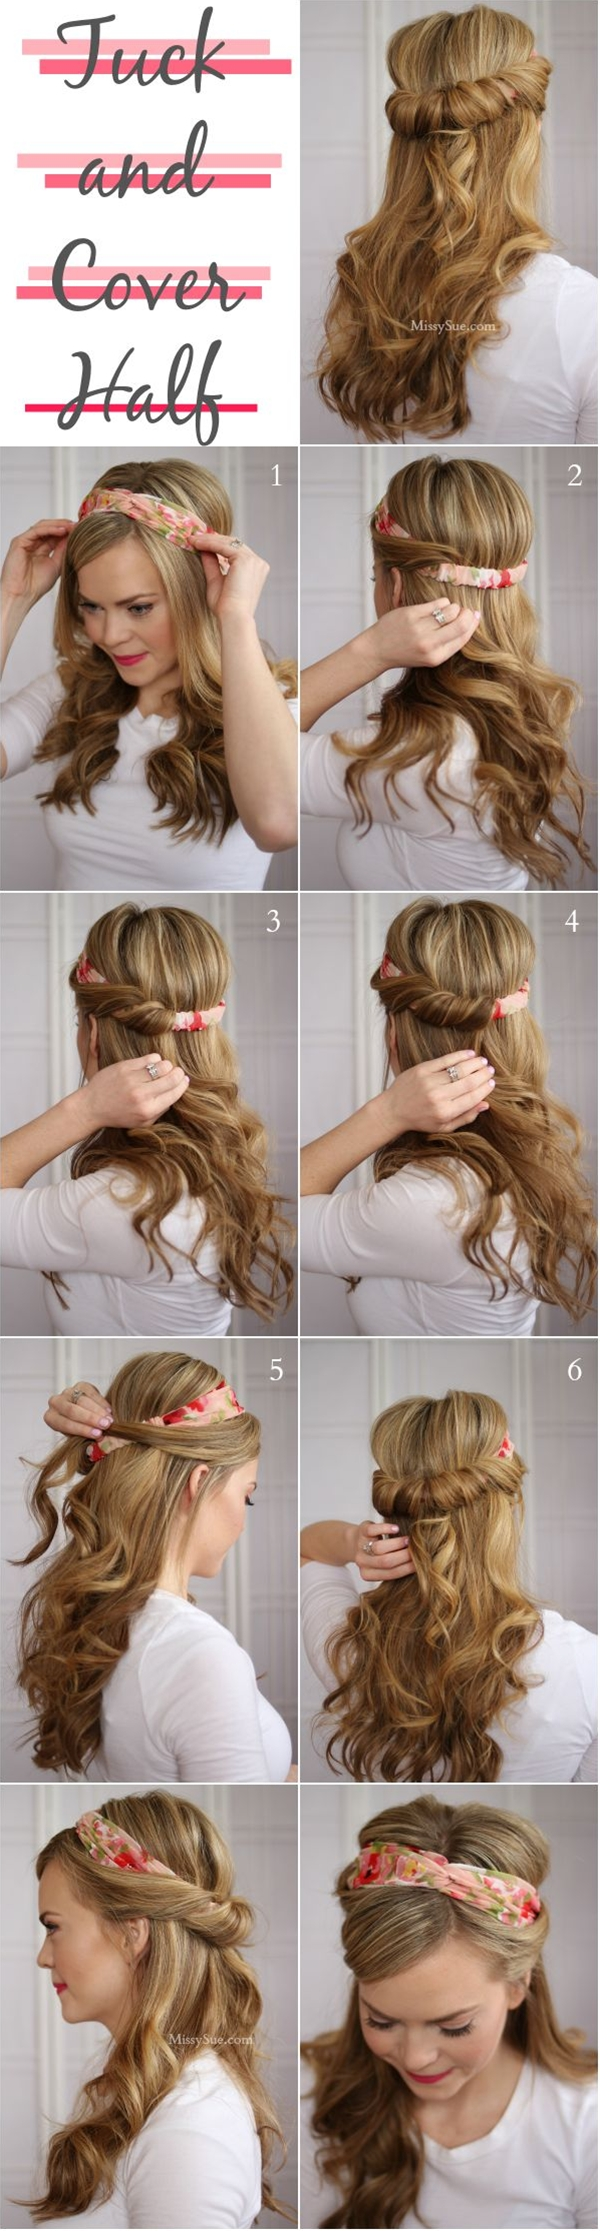 the perfect way to your favorite headband!